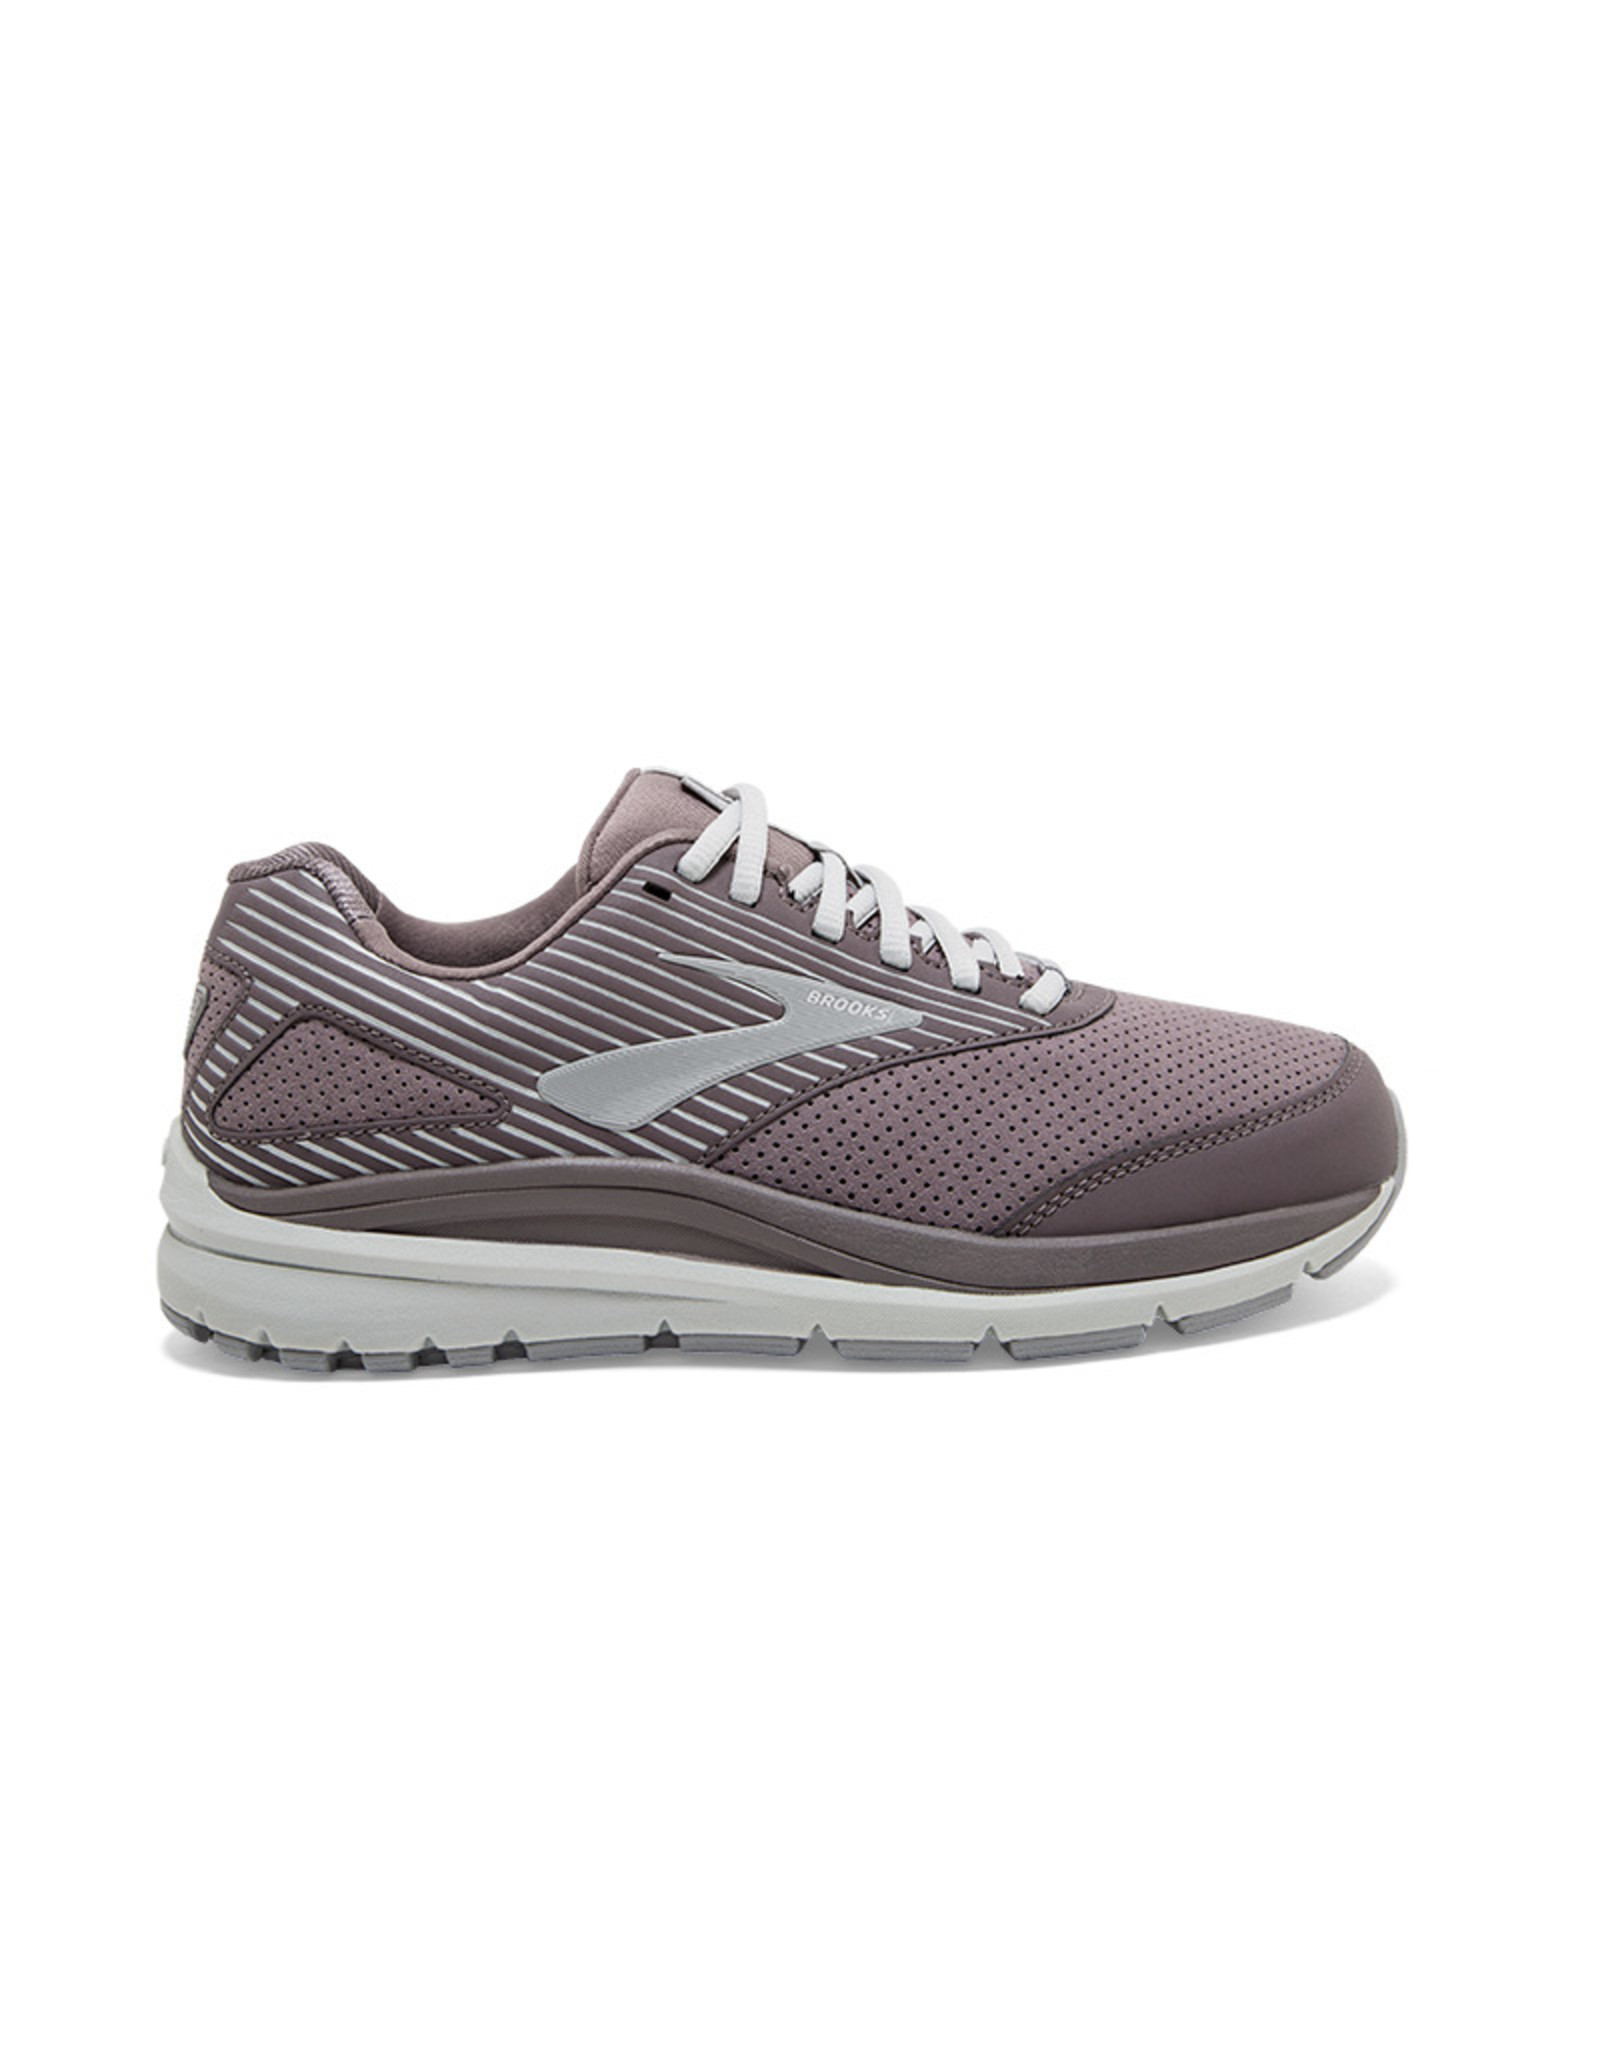 BROOKS WMNS ADDICTION WALKER SUEDE